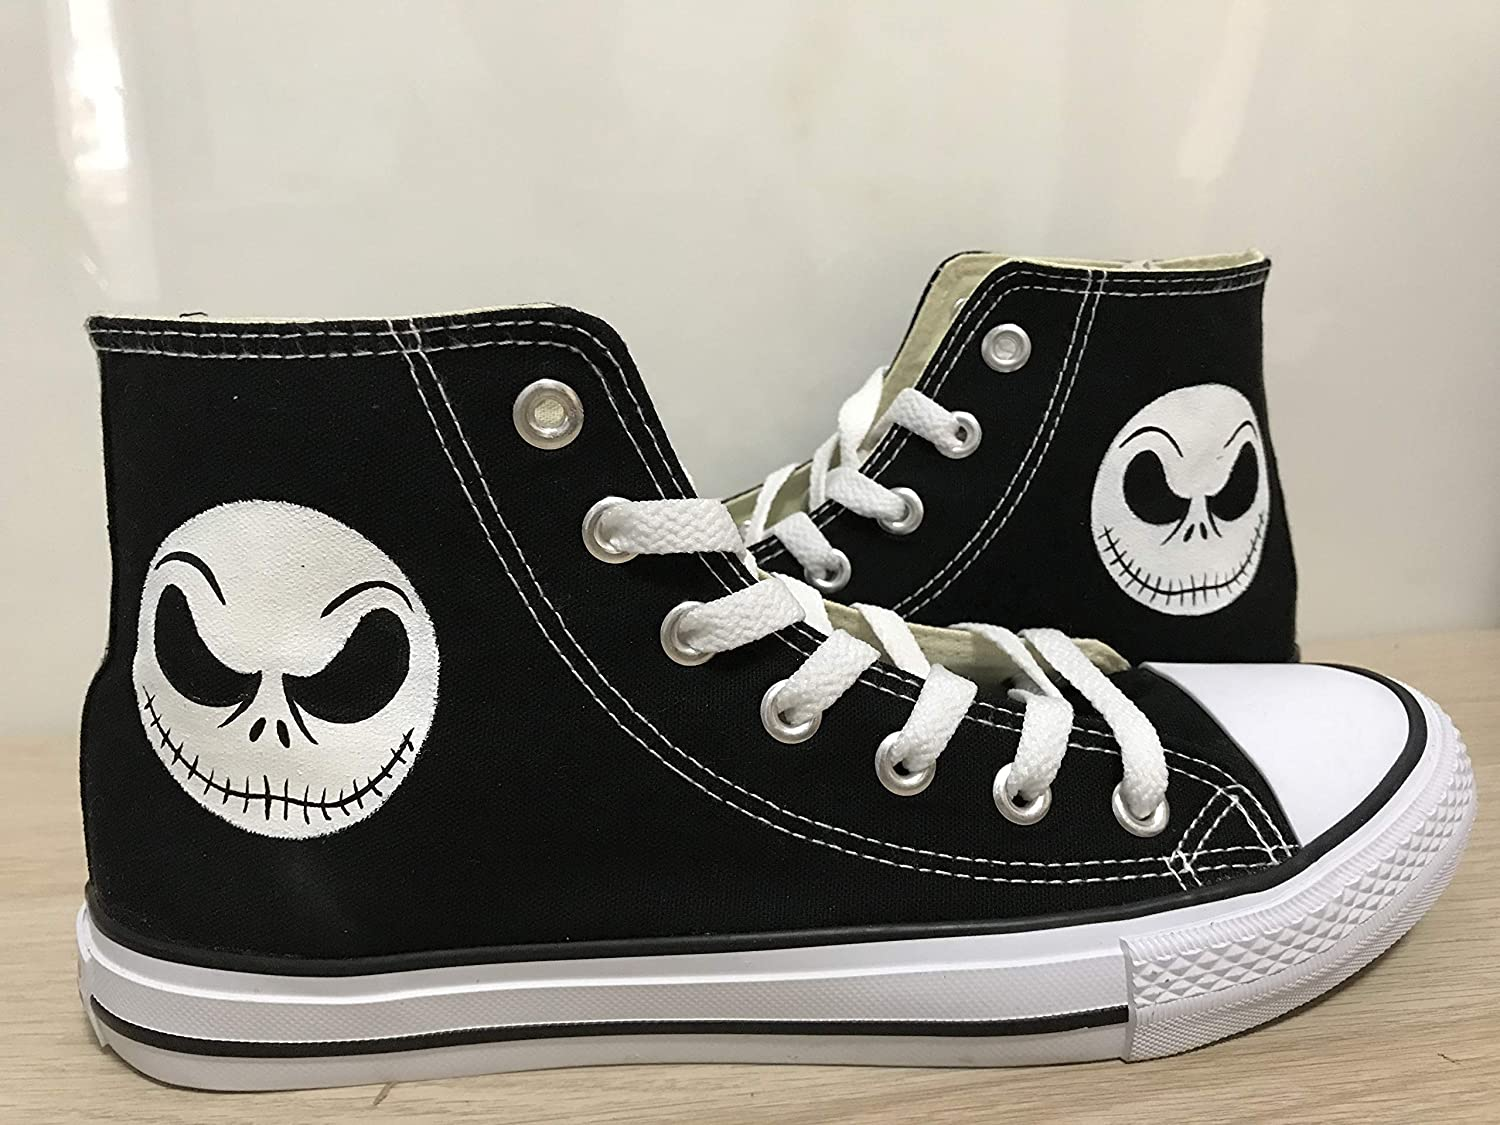 Nightmare Before Christmas High Top Sneakers For Women Hand Painted Shoes Custom Chuck Taylors Chuck Taylor High Top FREE SHPPING